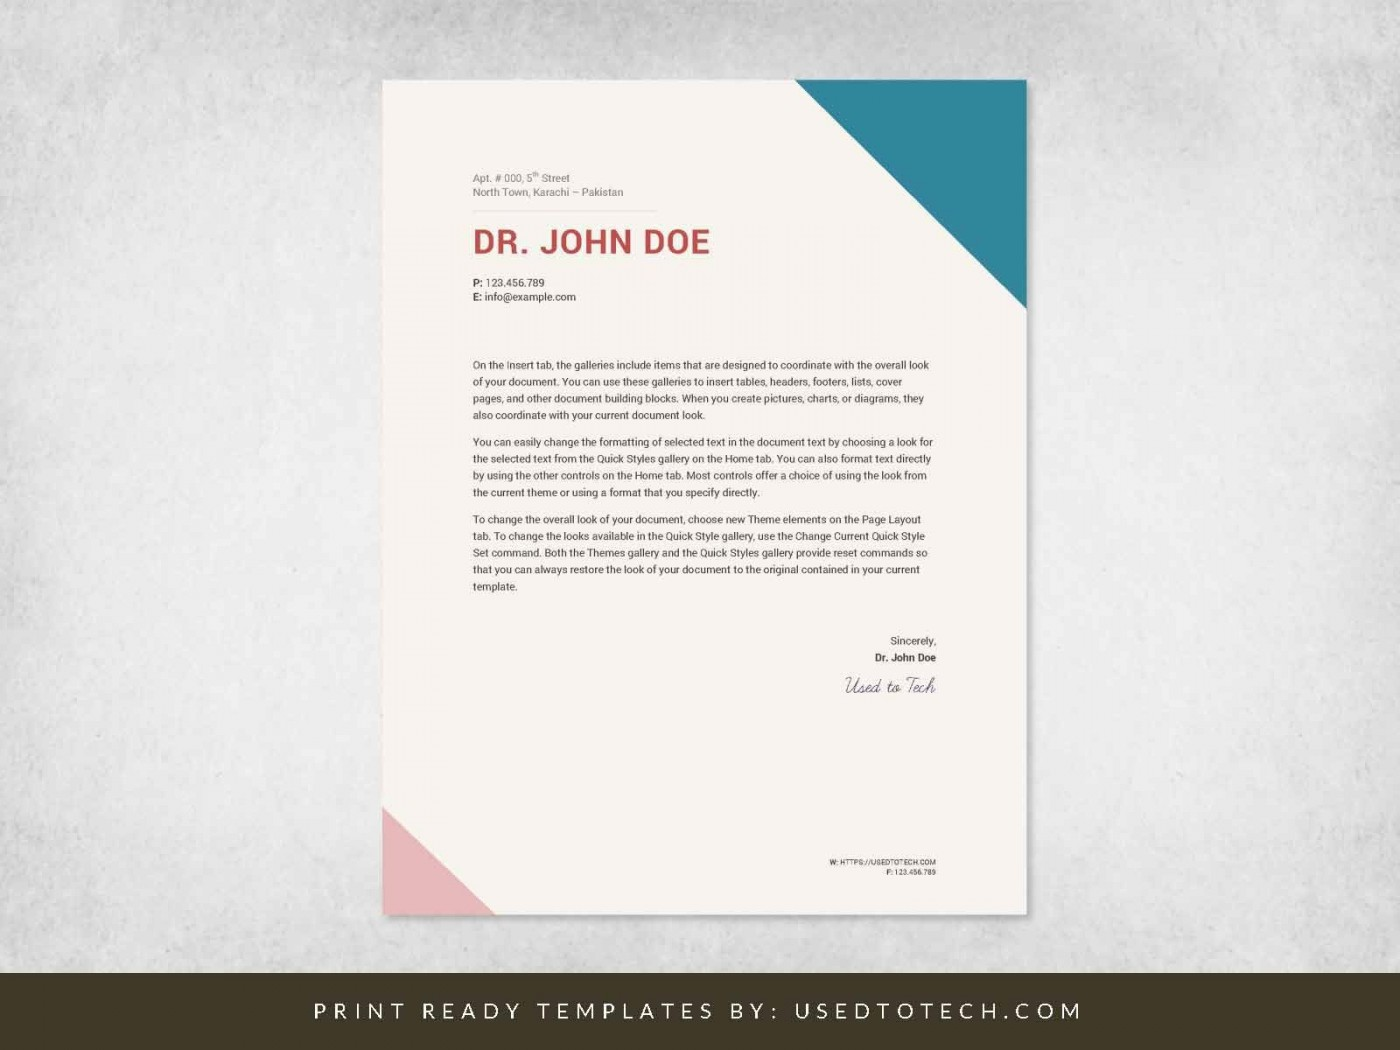 001 Fascinating Sample Letterhead Template Free Download Image  Professional Design In Word Format1400